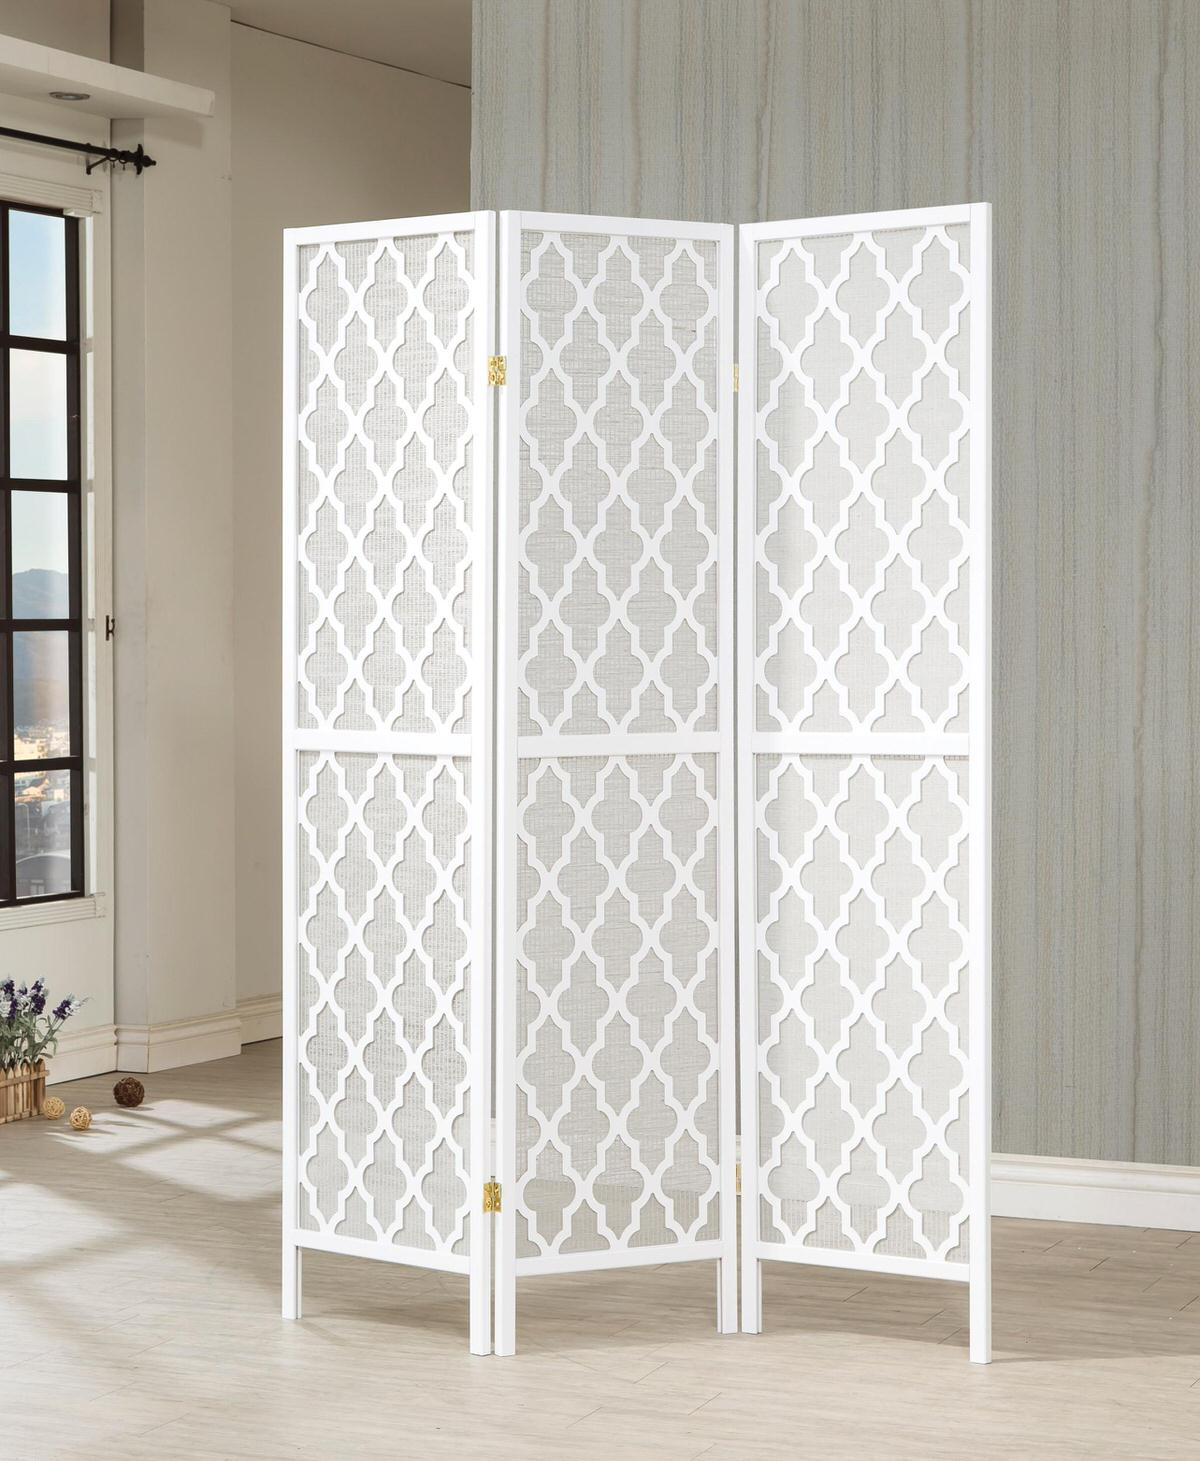 901908 3 Panel Room Divider By Coaster